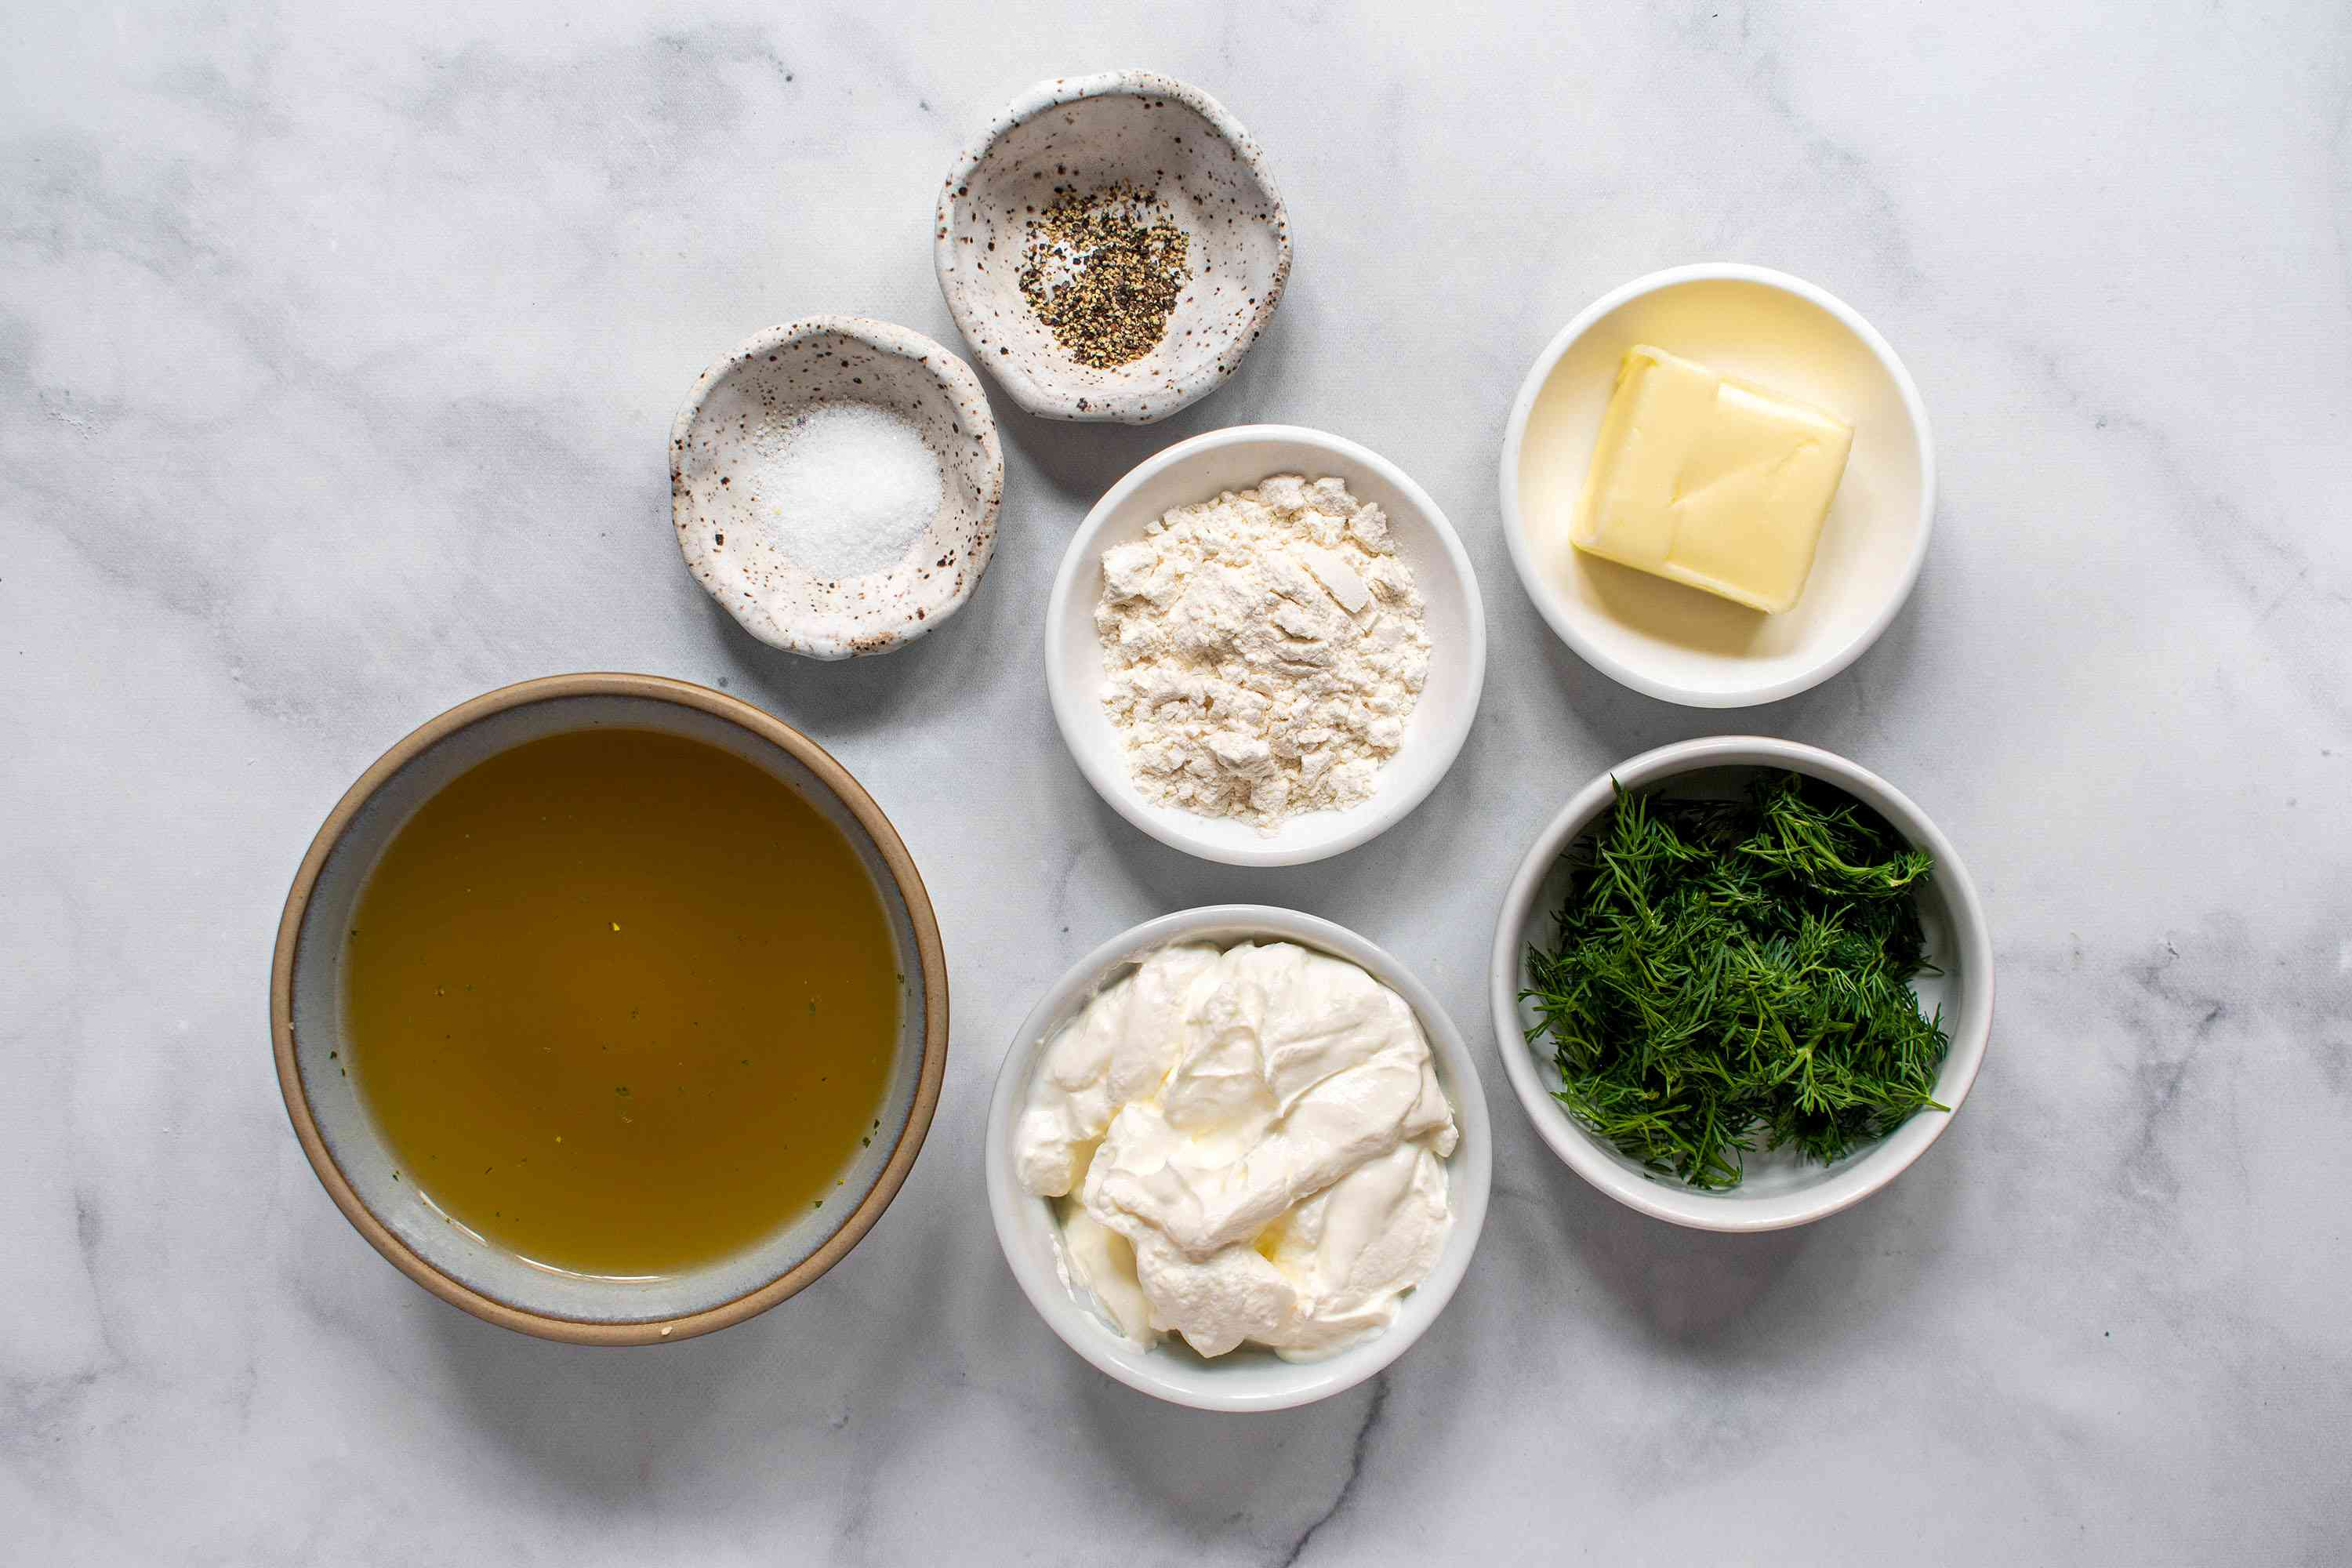 Creamy Dill Sauce ingredients